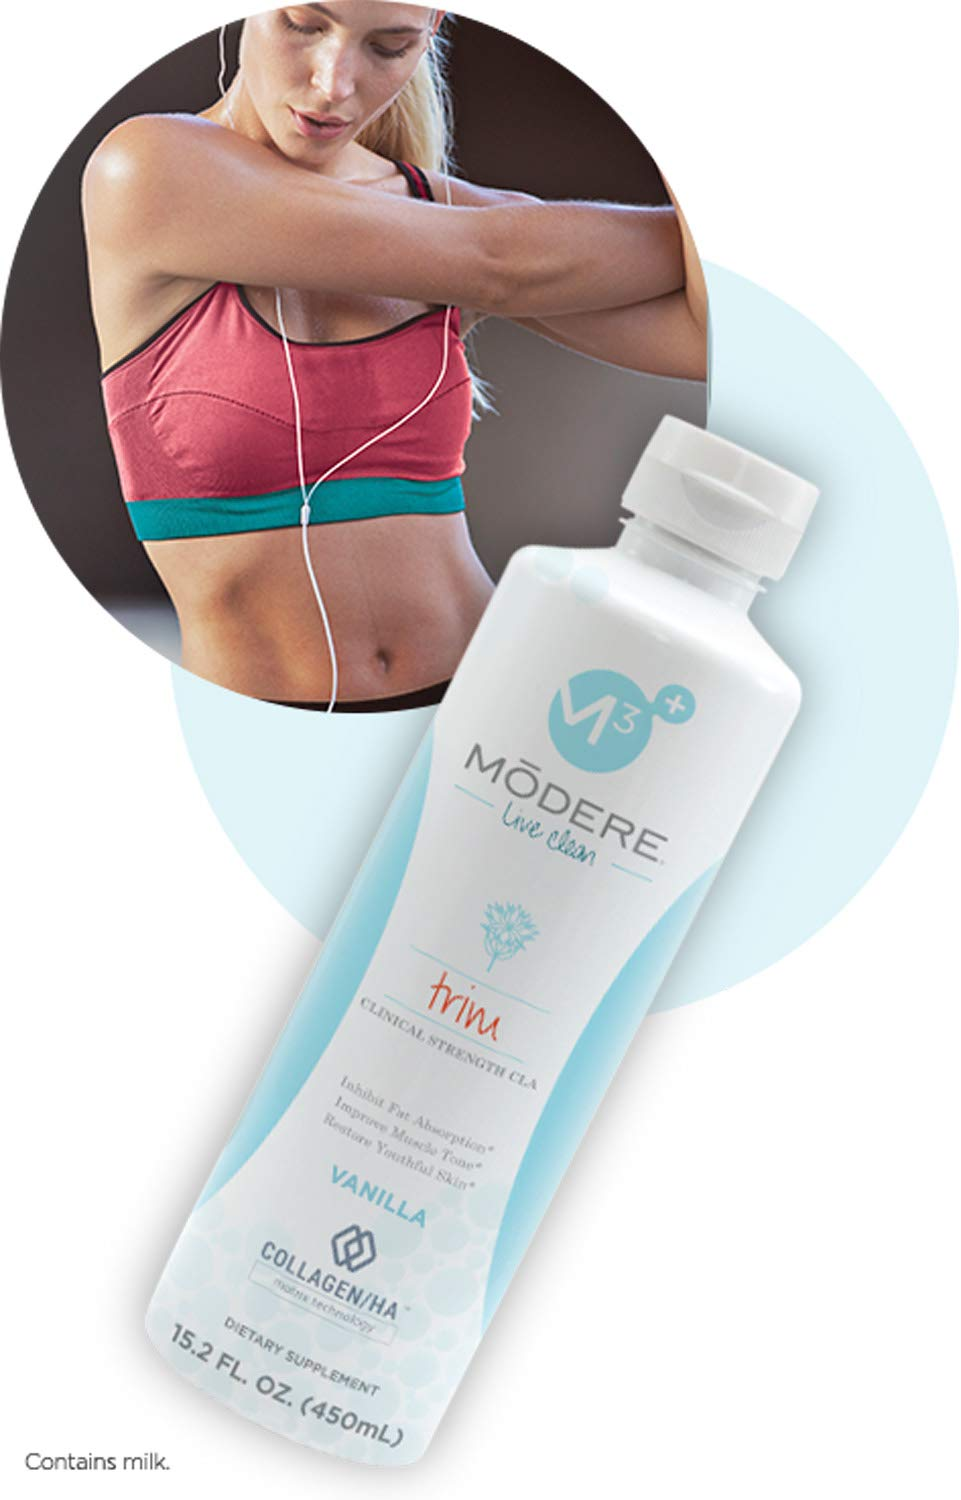 Modere Trim Vanilla Collagen Weight Loss Toning All Natural Supplement with Hyaluronic Acid & Peptides